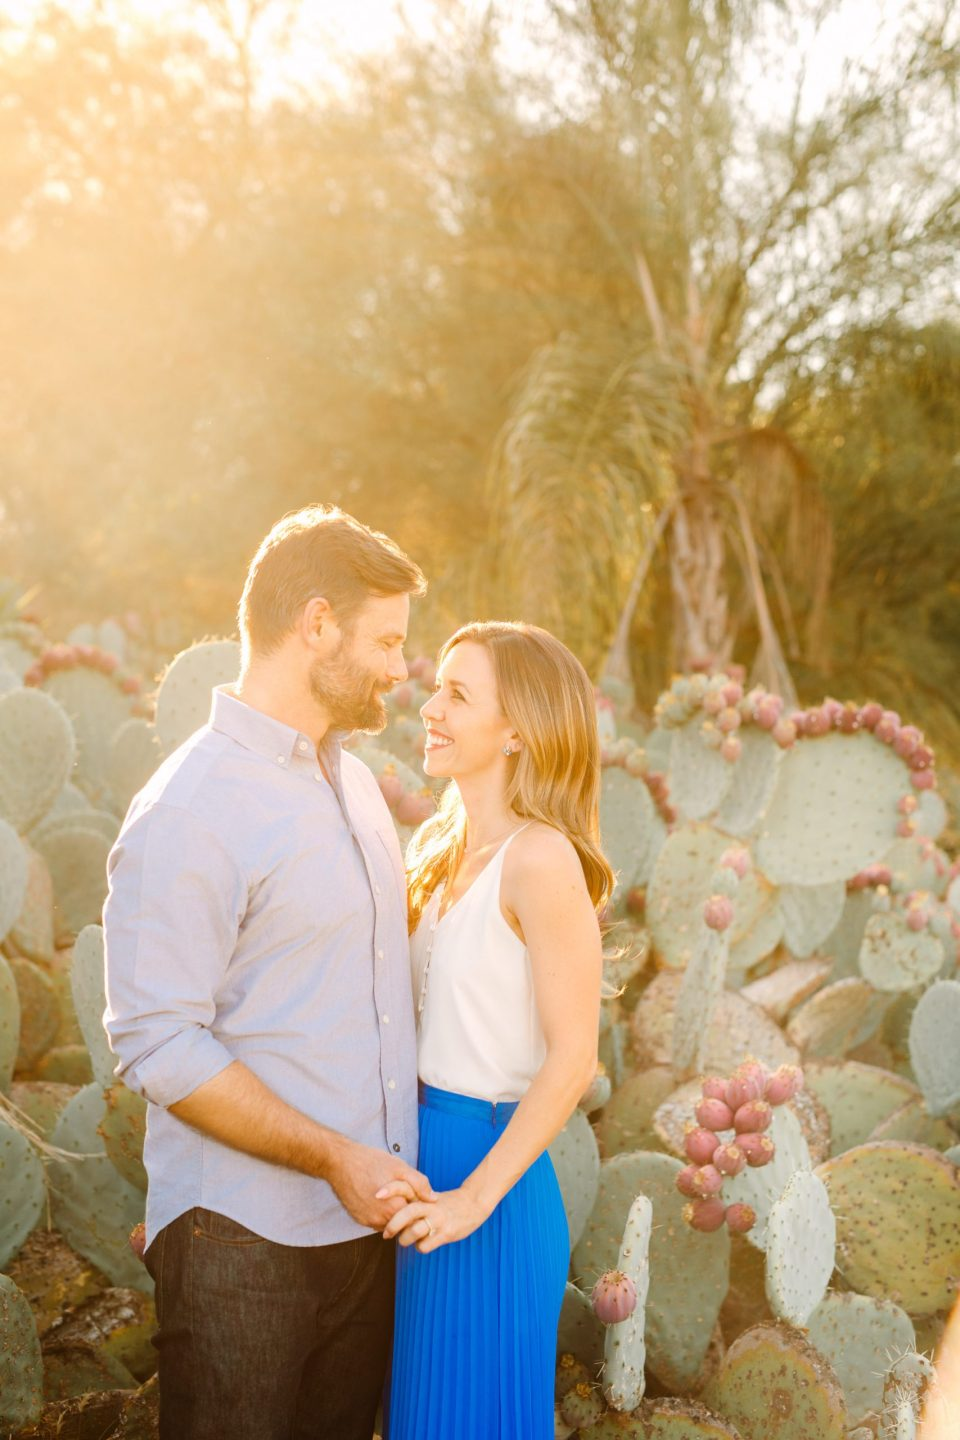 Couple in cactus garden by Mary Costa Photography